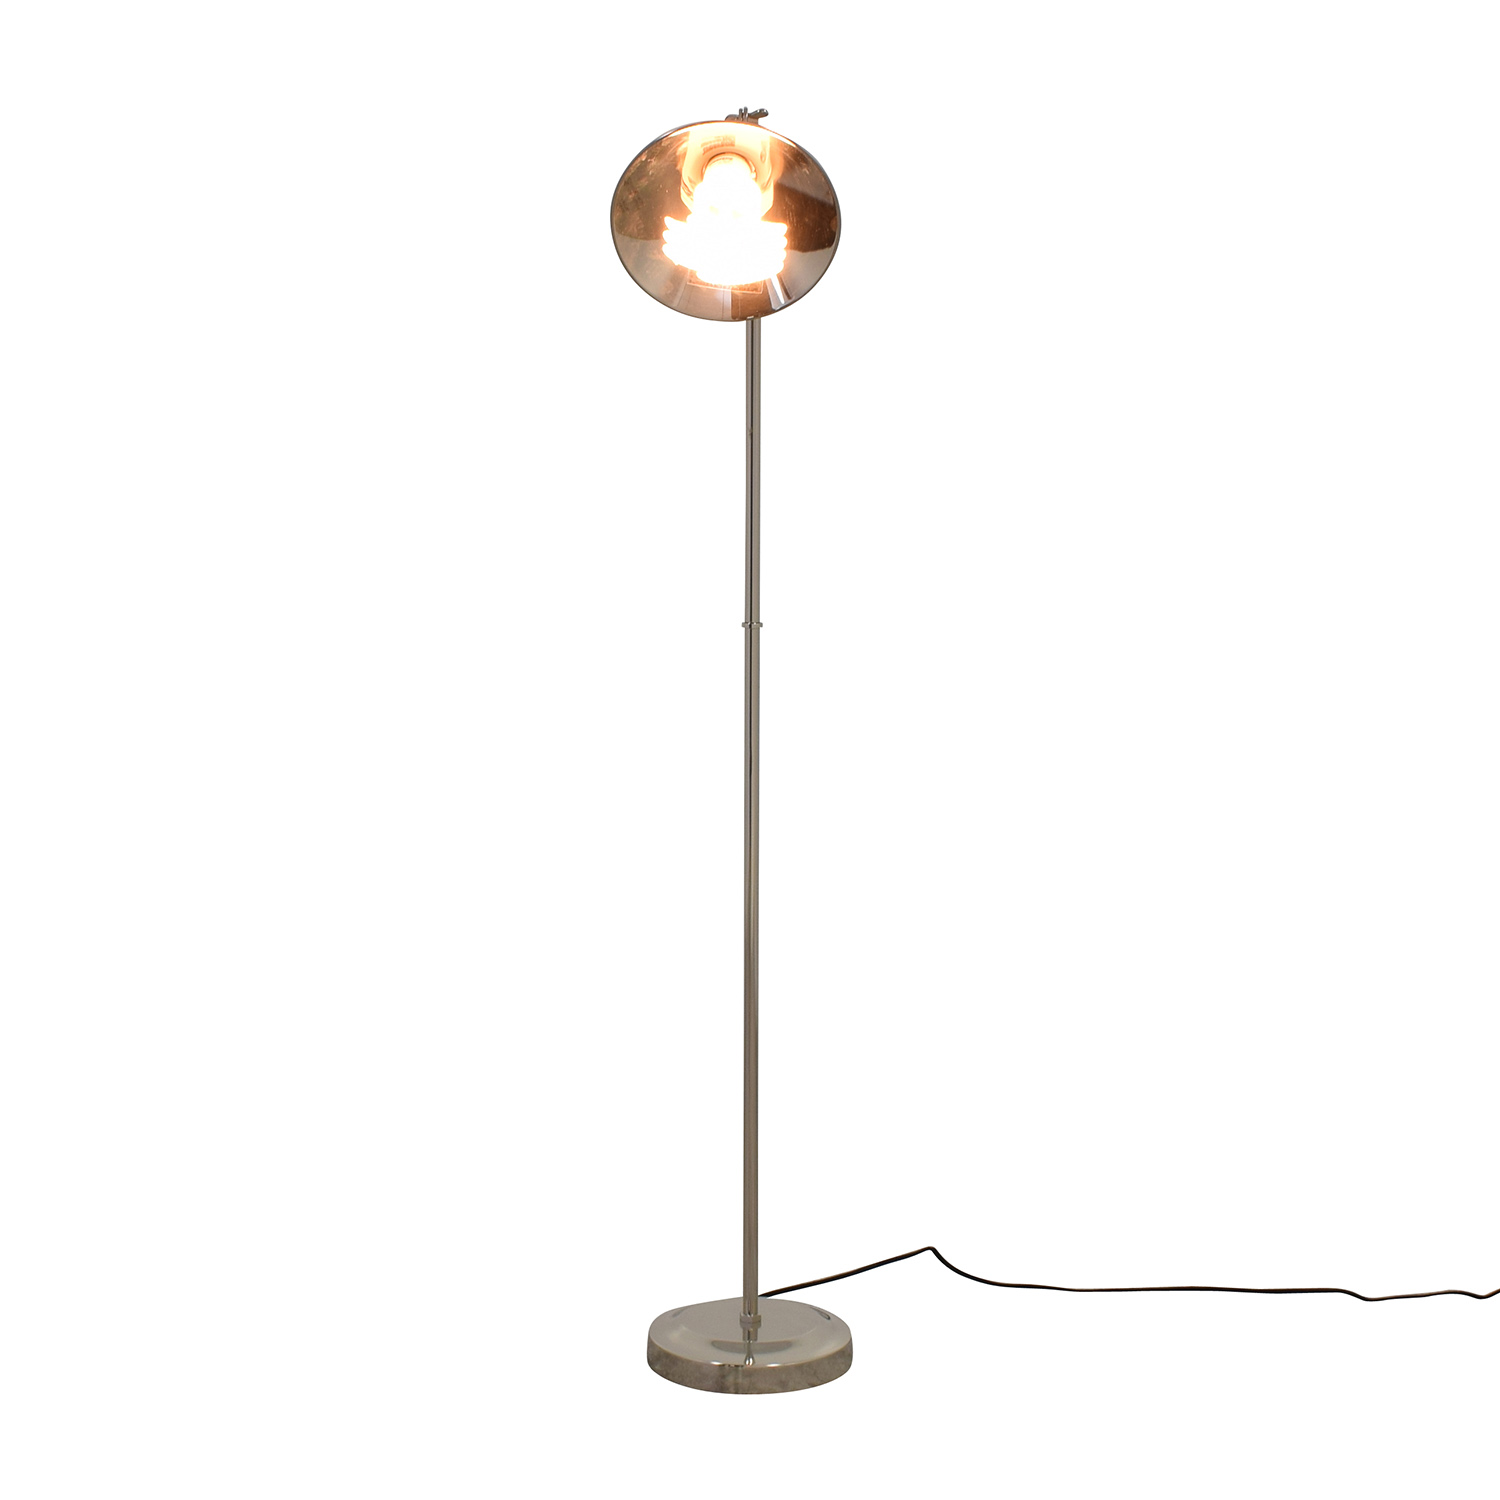 Lighting And Locks Coupon Codes Save Up to 70% Off Clearance Products Get up to 70% off discount on a selection of clearance products at uctergiyfon.gq